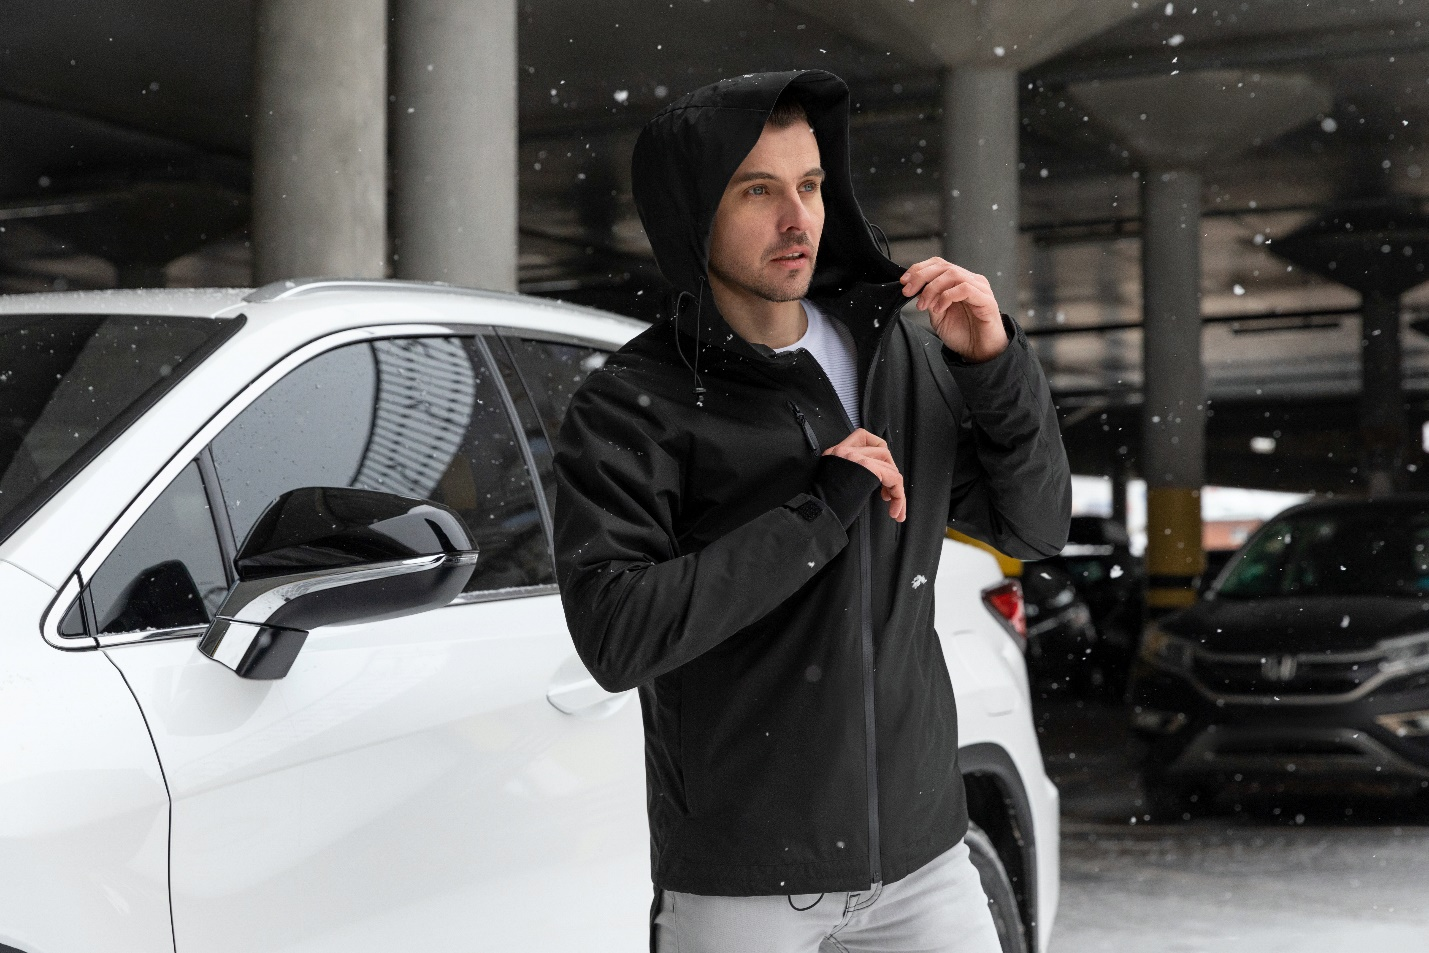 A person standing next to a car  Description automatically generated with medium confidence